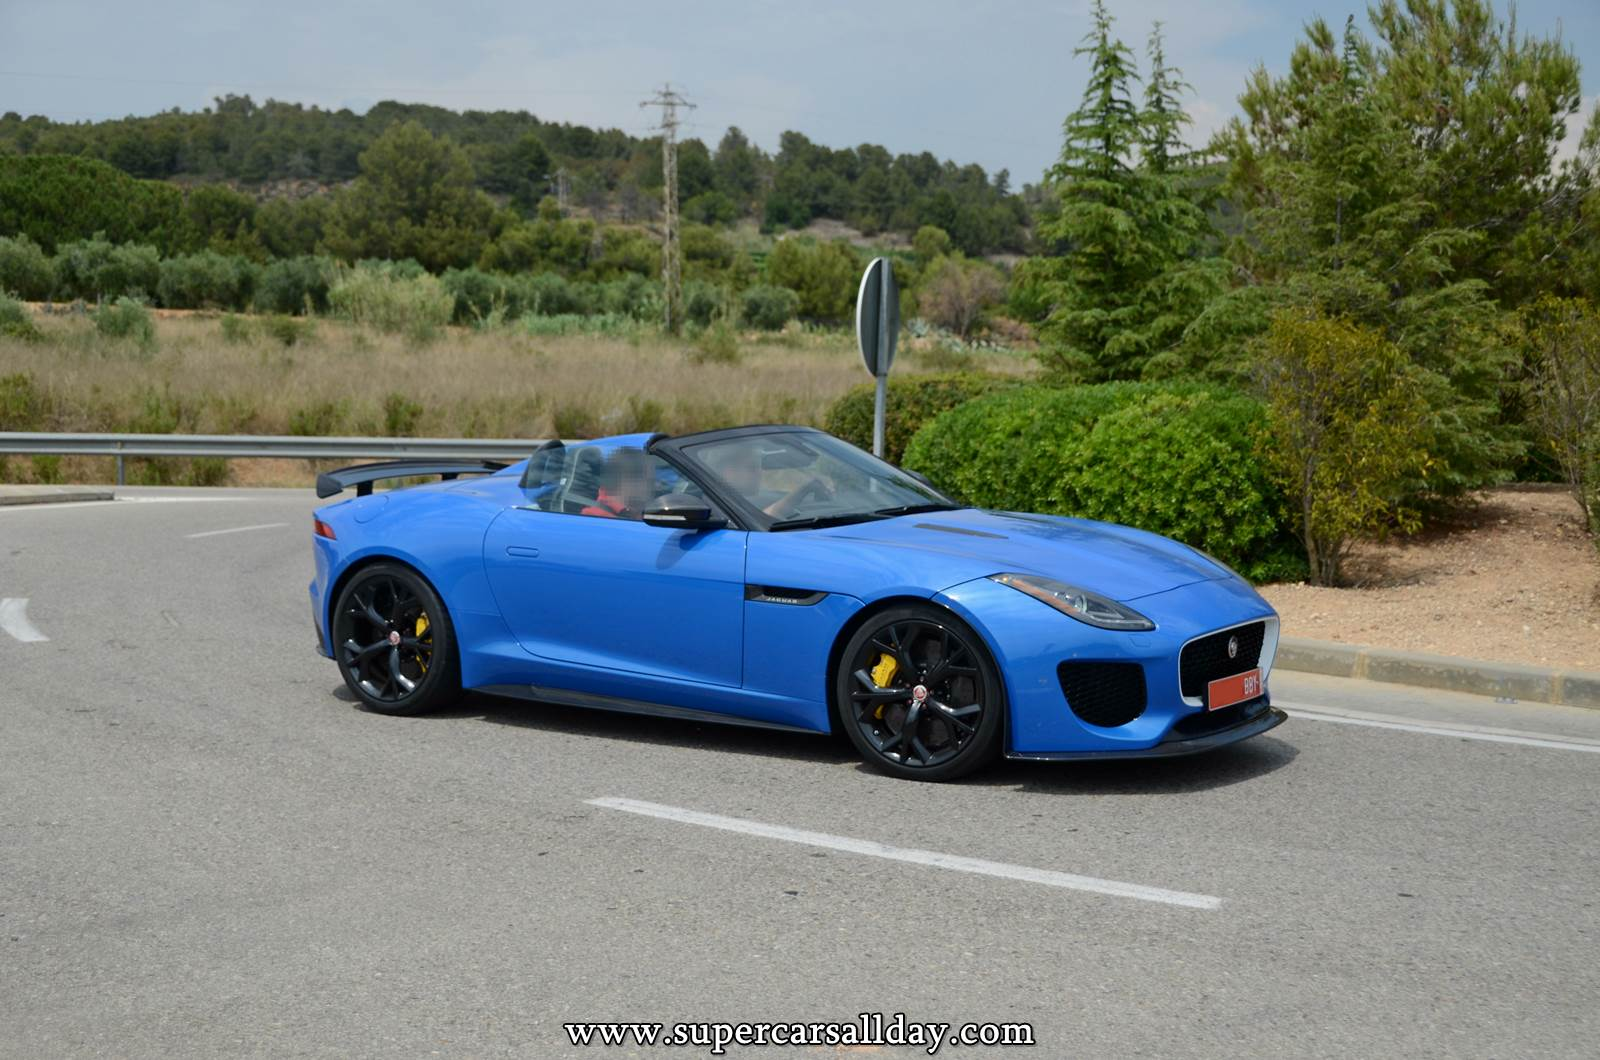 jaguar f type project 7 ub supercars all day exotic cars photo car collection. Black Bedroom Furniture Sets. Home Design Ideas